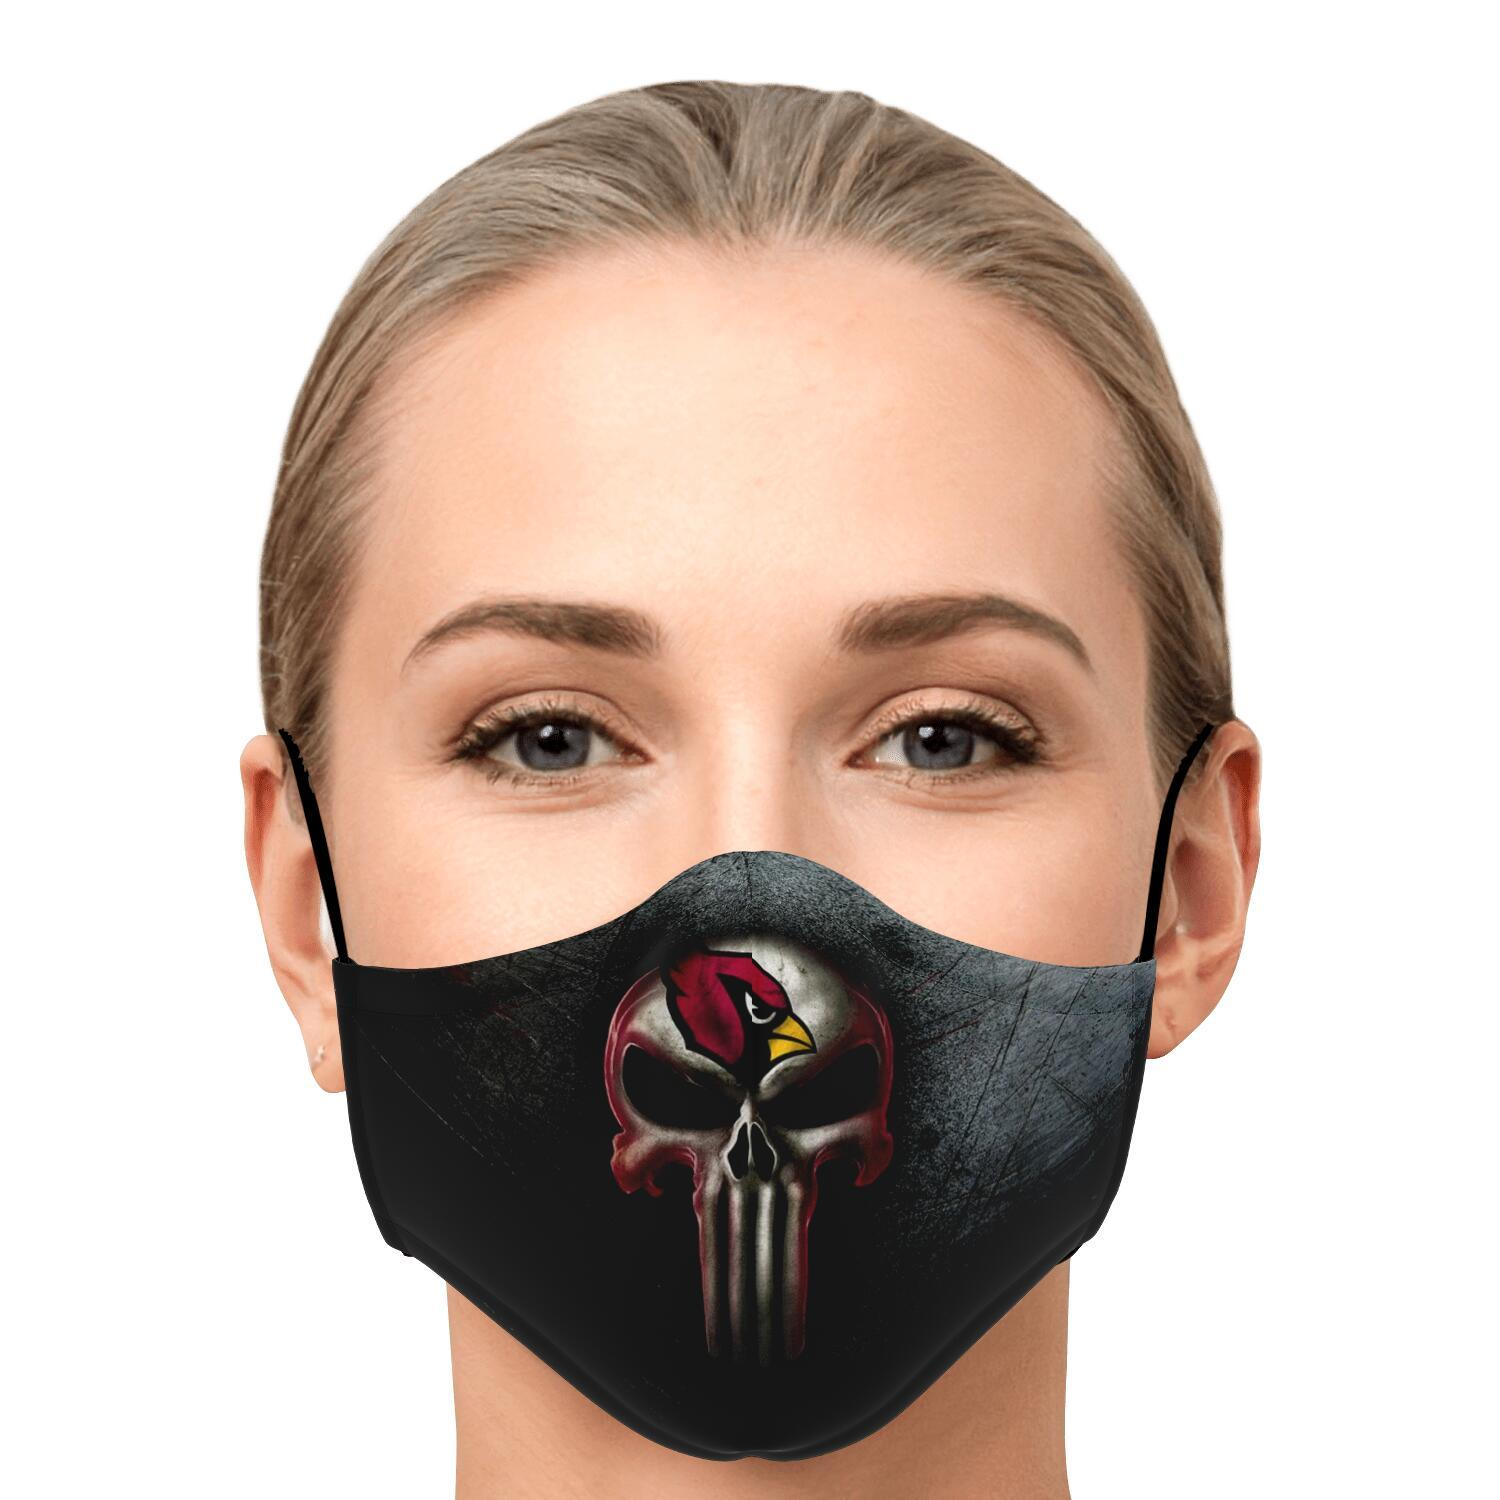 Arizona Cardinals The Punisher Mashup Face Mask 1